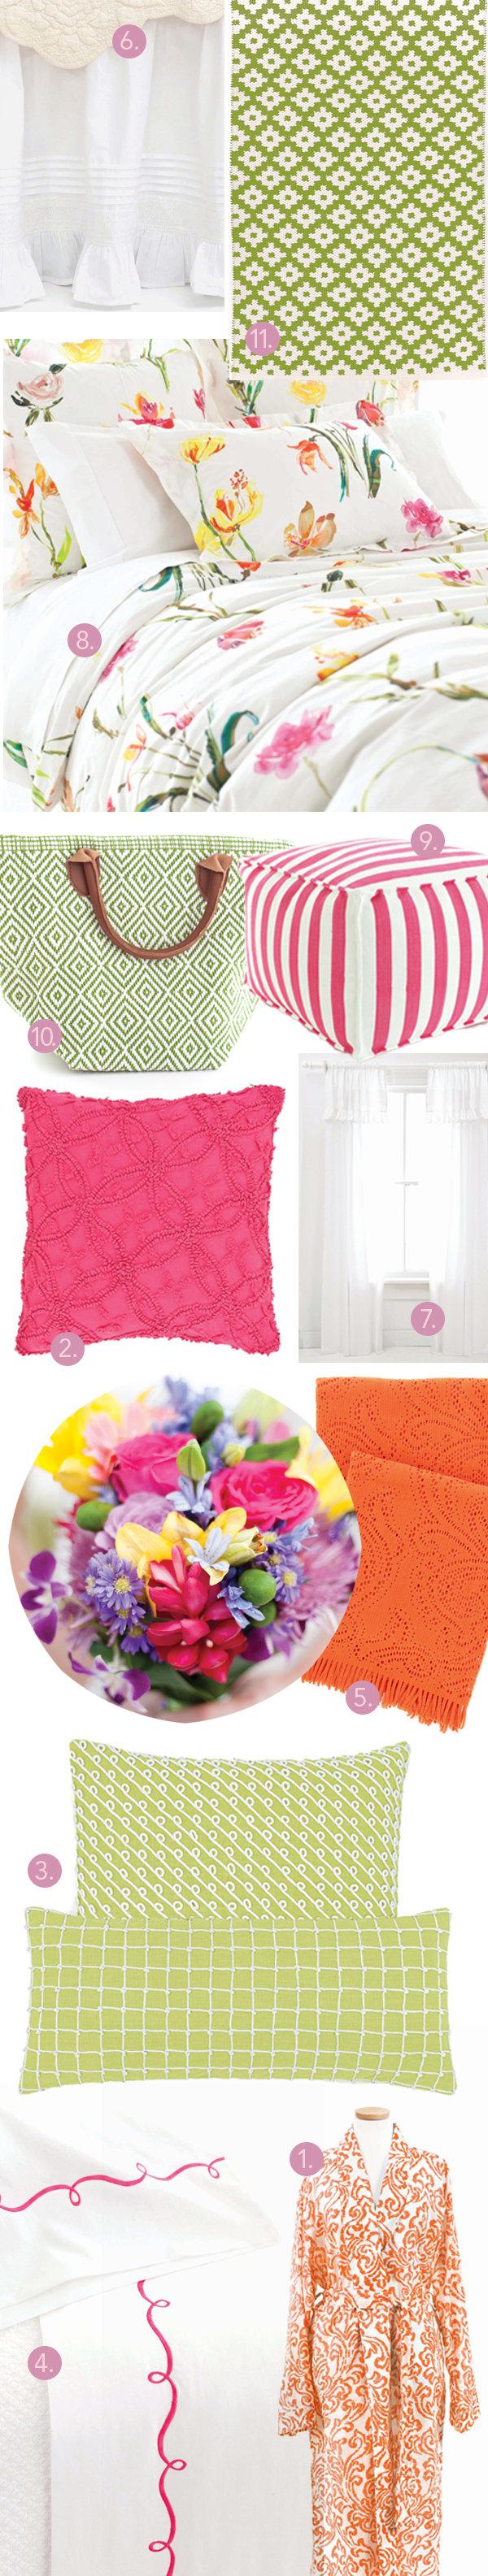 Pine Cone hill white bed skirt Dash and Albert Samode sprout rug trimaran pouf chadna decorative pillows embroidered hem fuchsia sheet set damask robe paisley lace throw spring bouquet white window panels